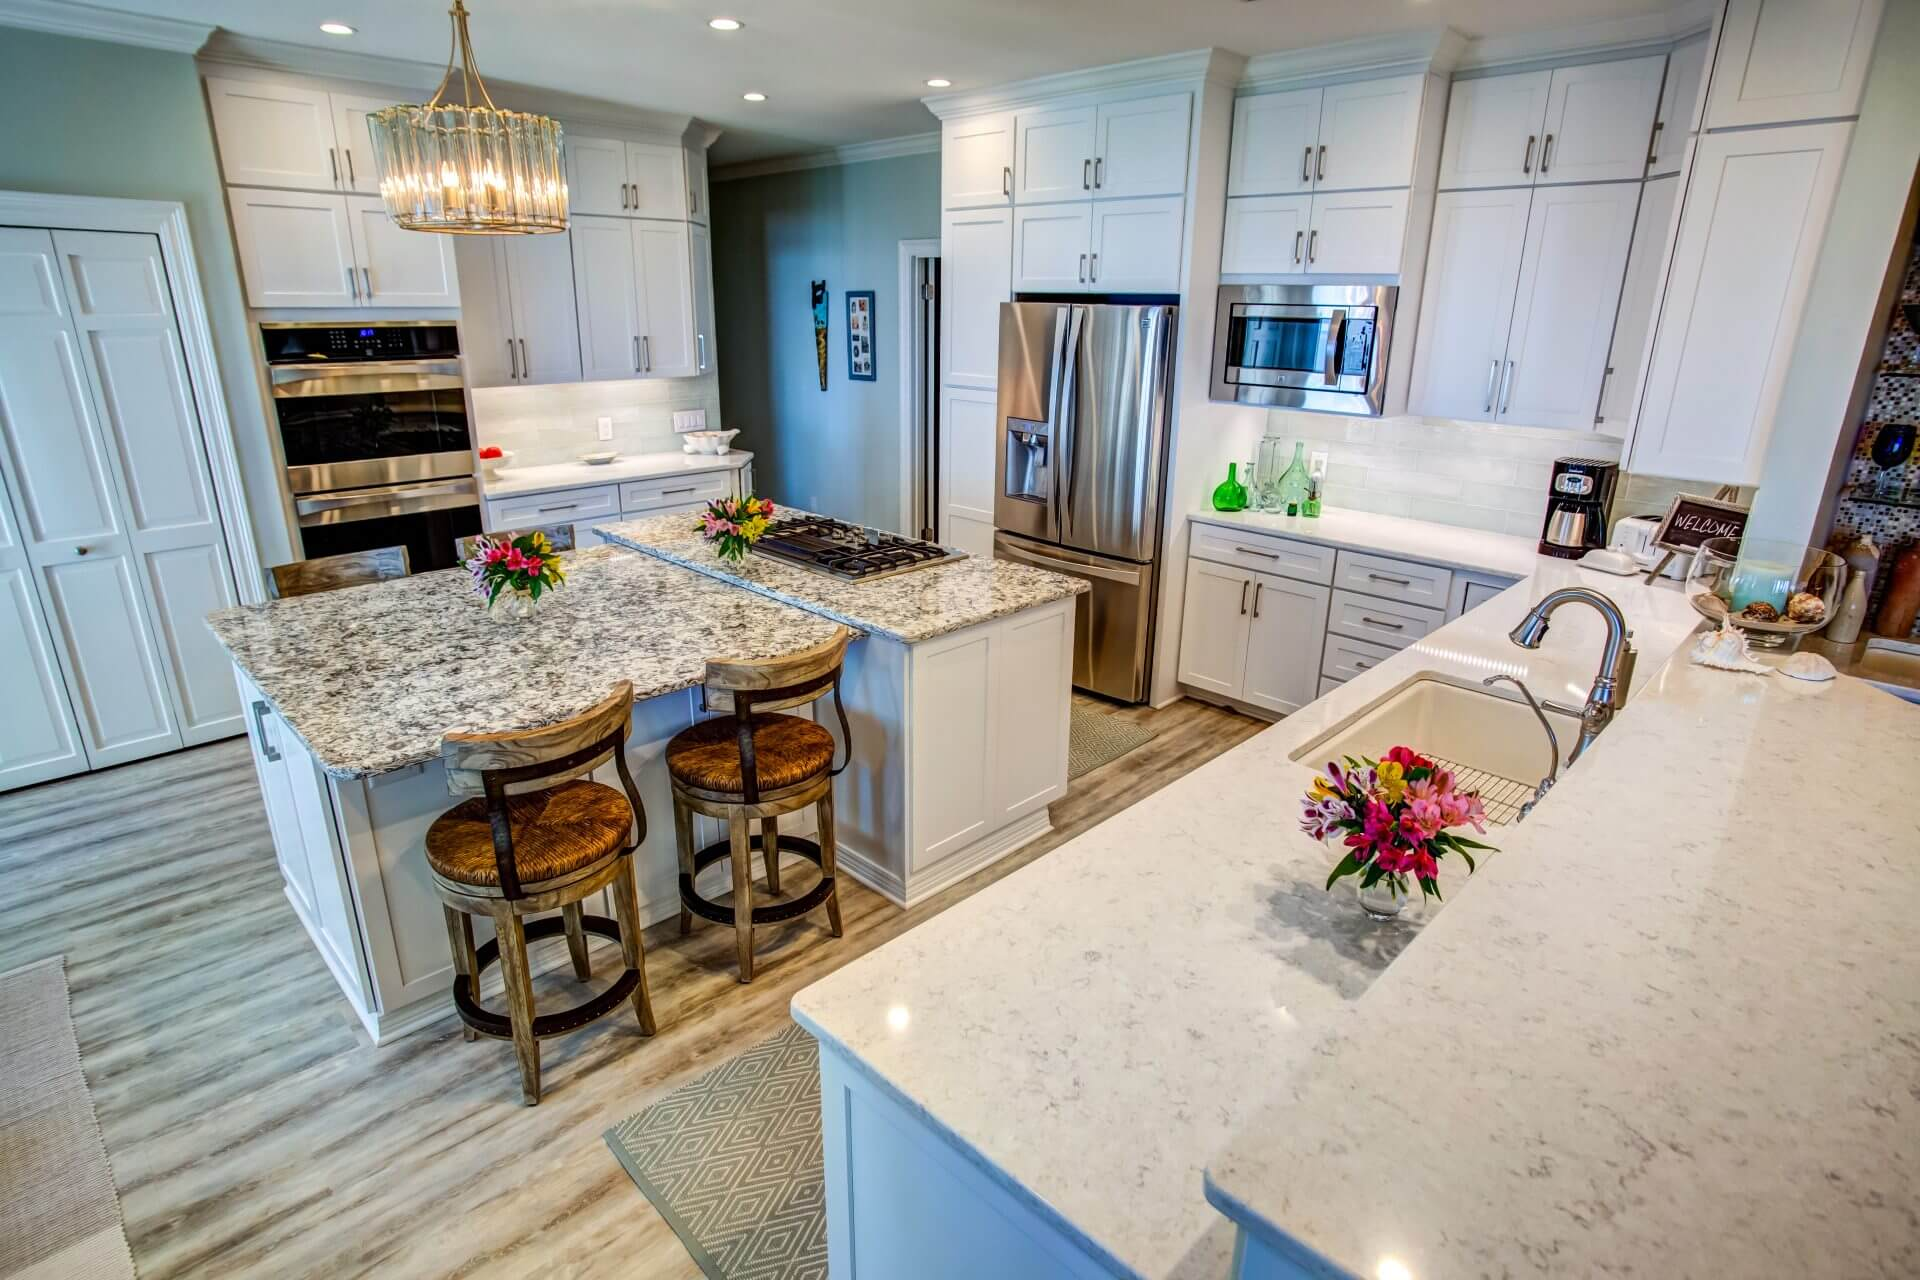 A beautifully remodeled kitchen with white Shaker cabinets.